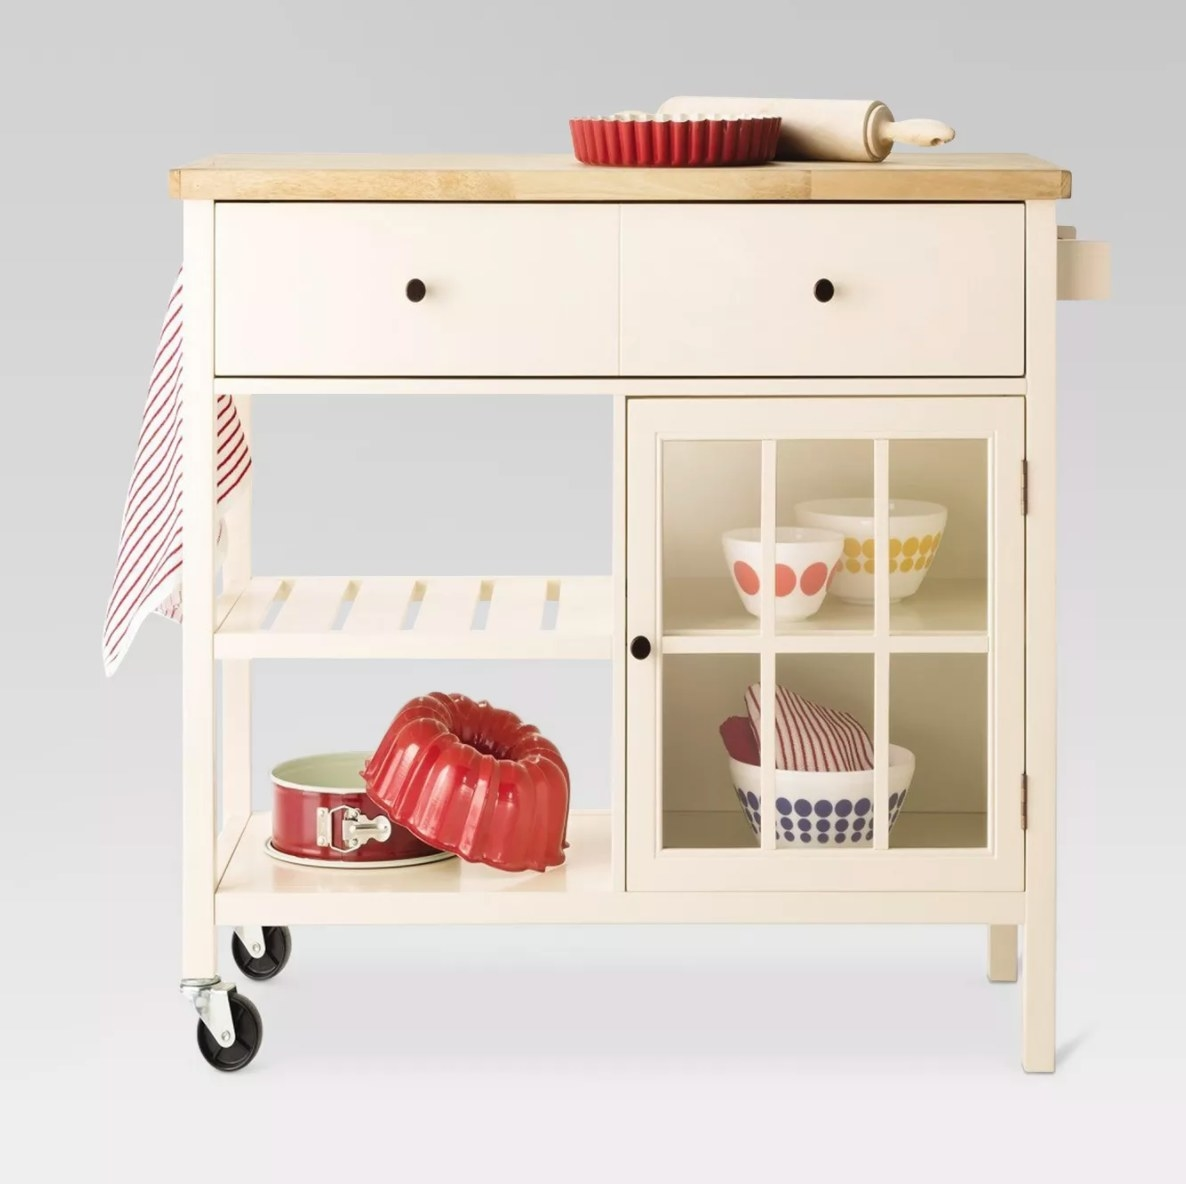 The kitchen cart